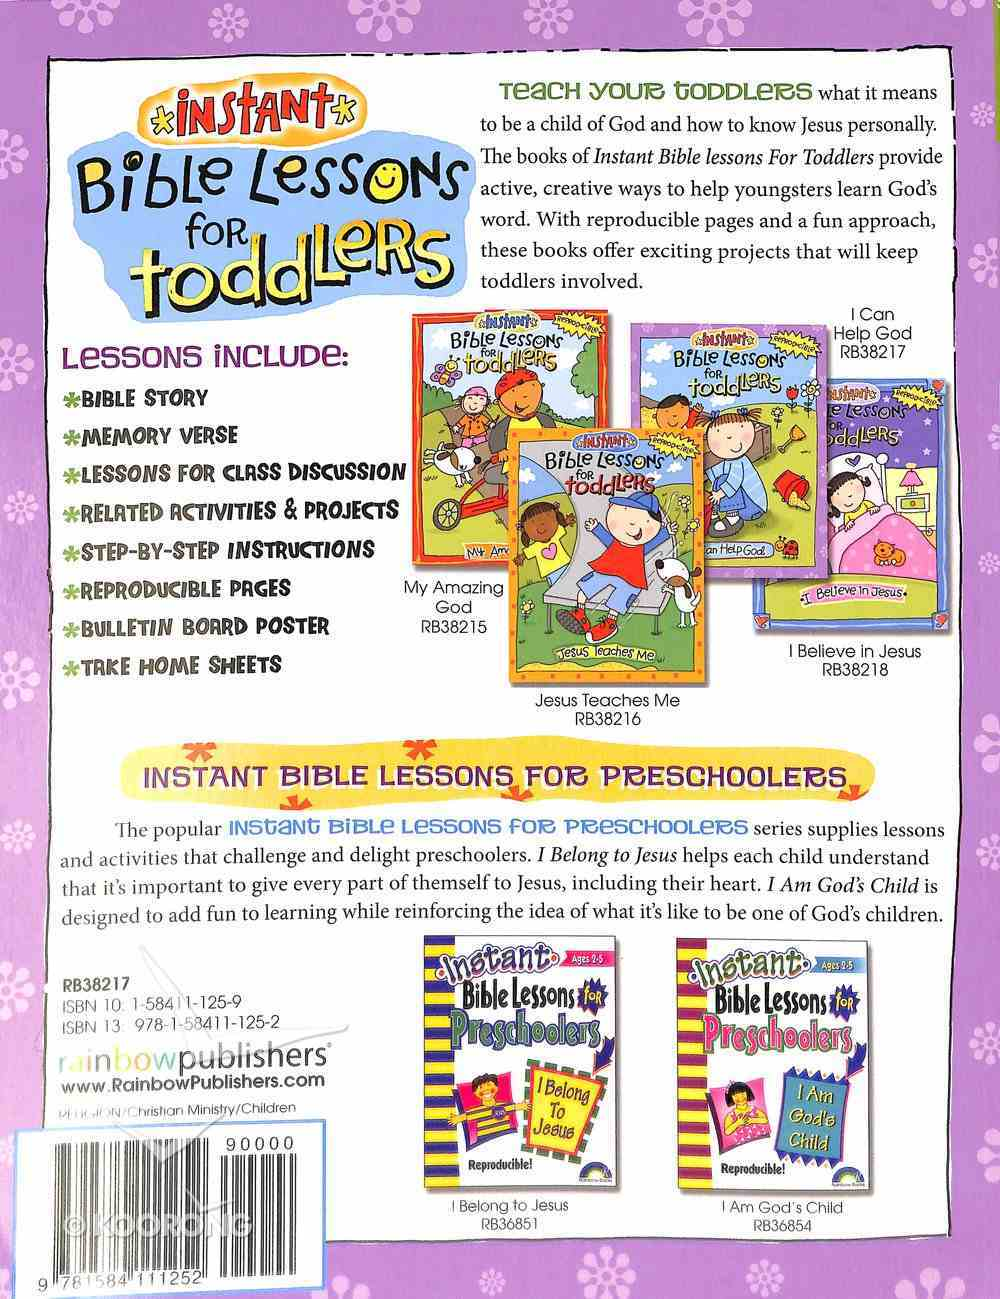 I Can Help God (Reproducible, Ages 1-3) (Instant Bible Lessons Series) Paperback